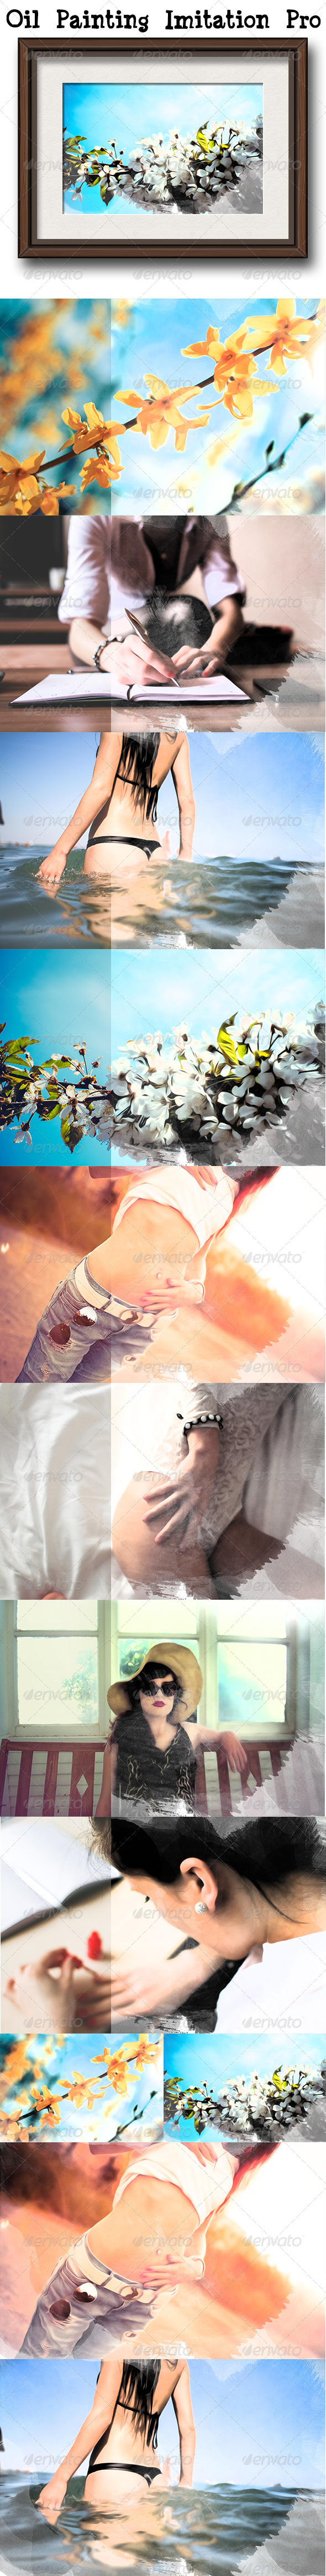 GraphicRiver Oil Painting Imitation Pro Vol 2 8010243